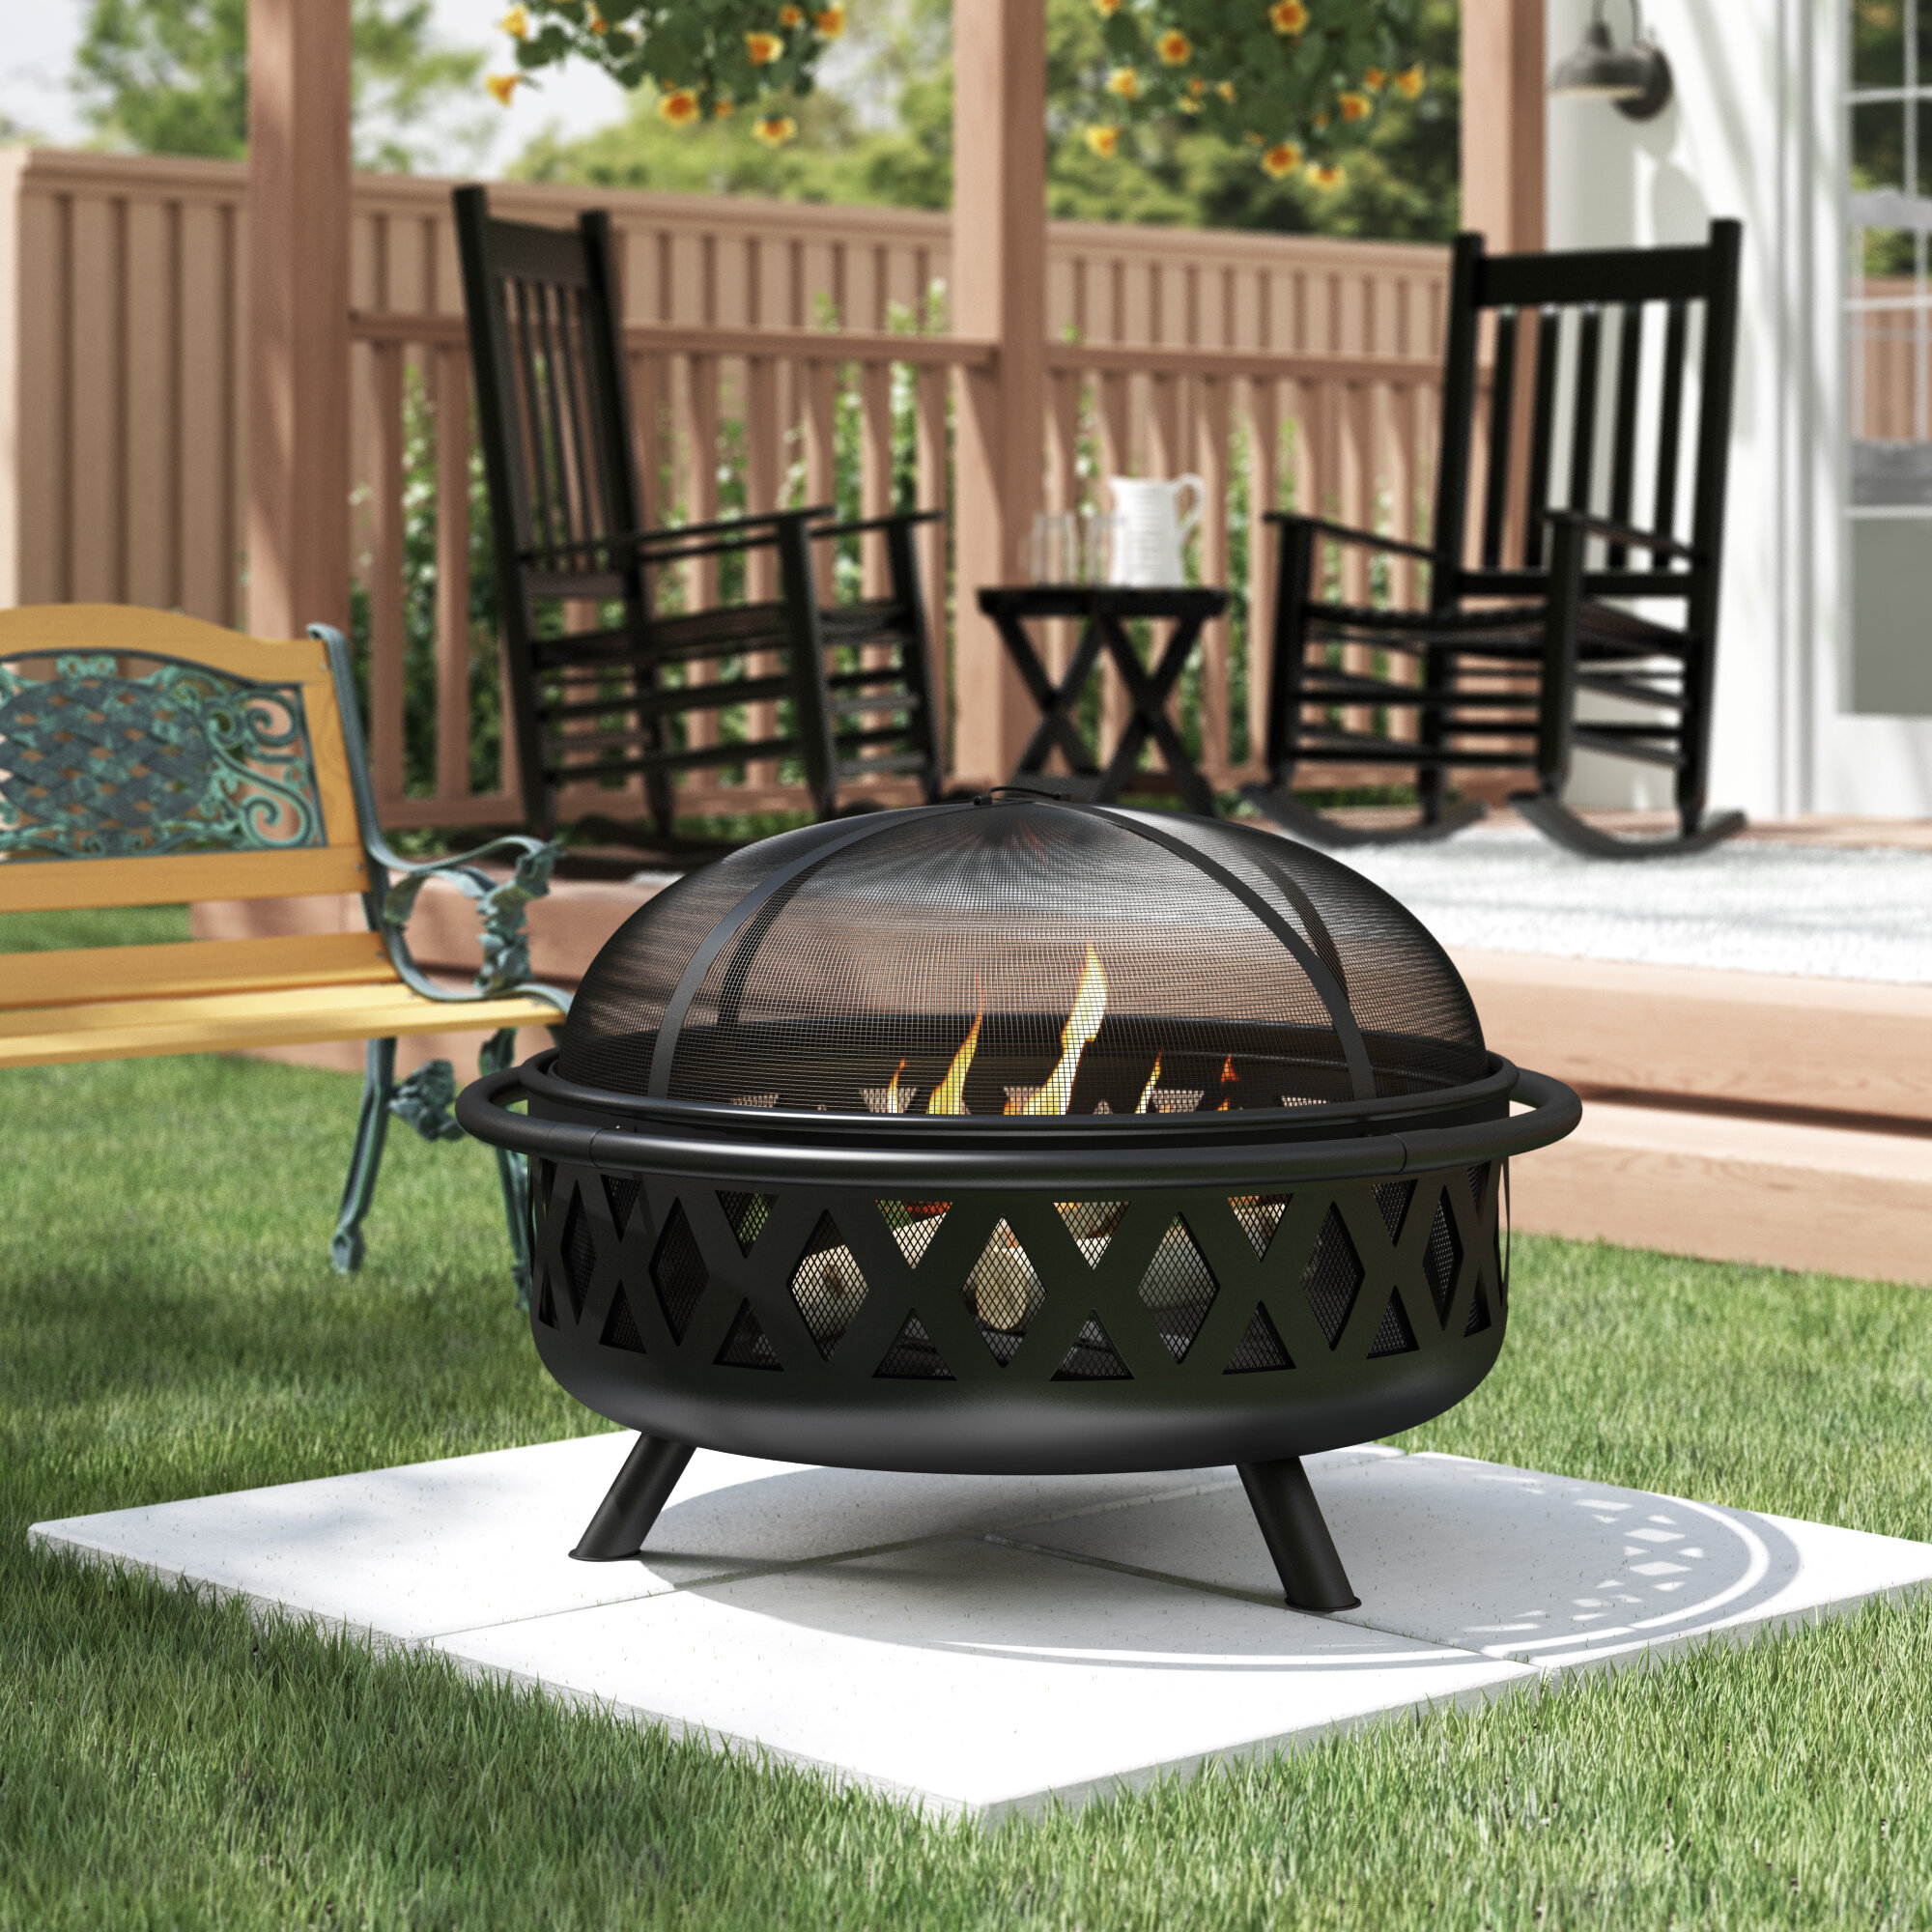 Terrace and Barbecue w//Glass Wind Guard 43 Inch 50,000 BTU Gas Fire Pit Table for Garden,Courtyard Clear Glass Rocks Balcony Brown Aoxun Outdoor Propane Fire Pit Table